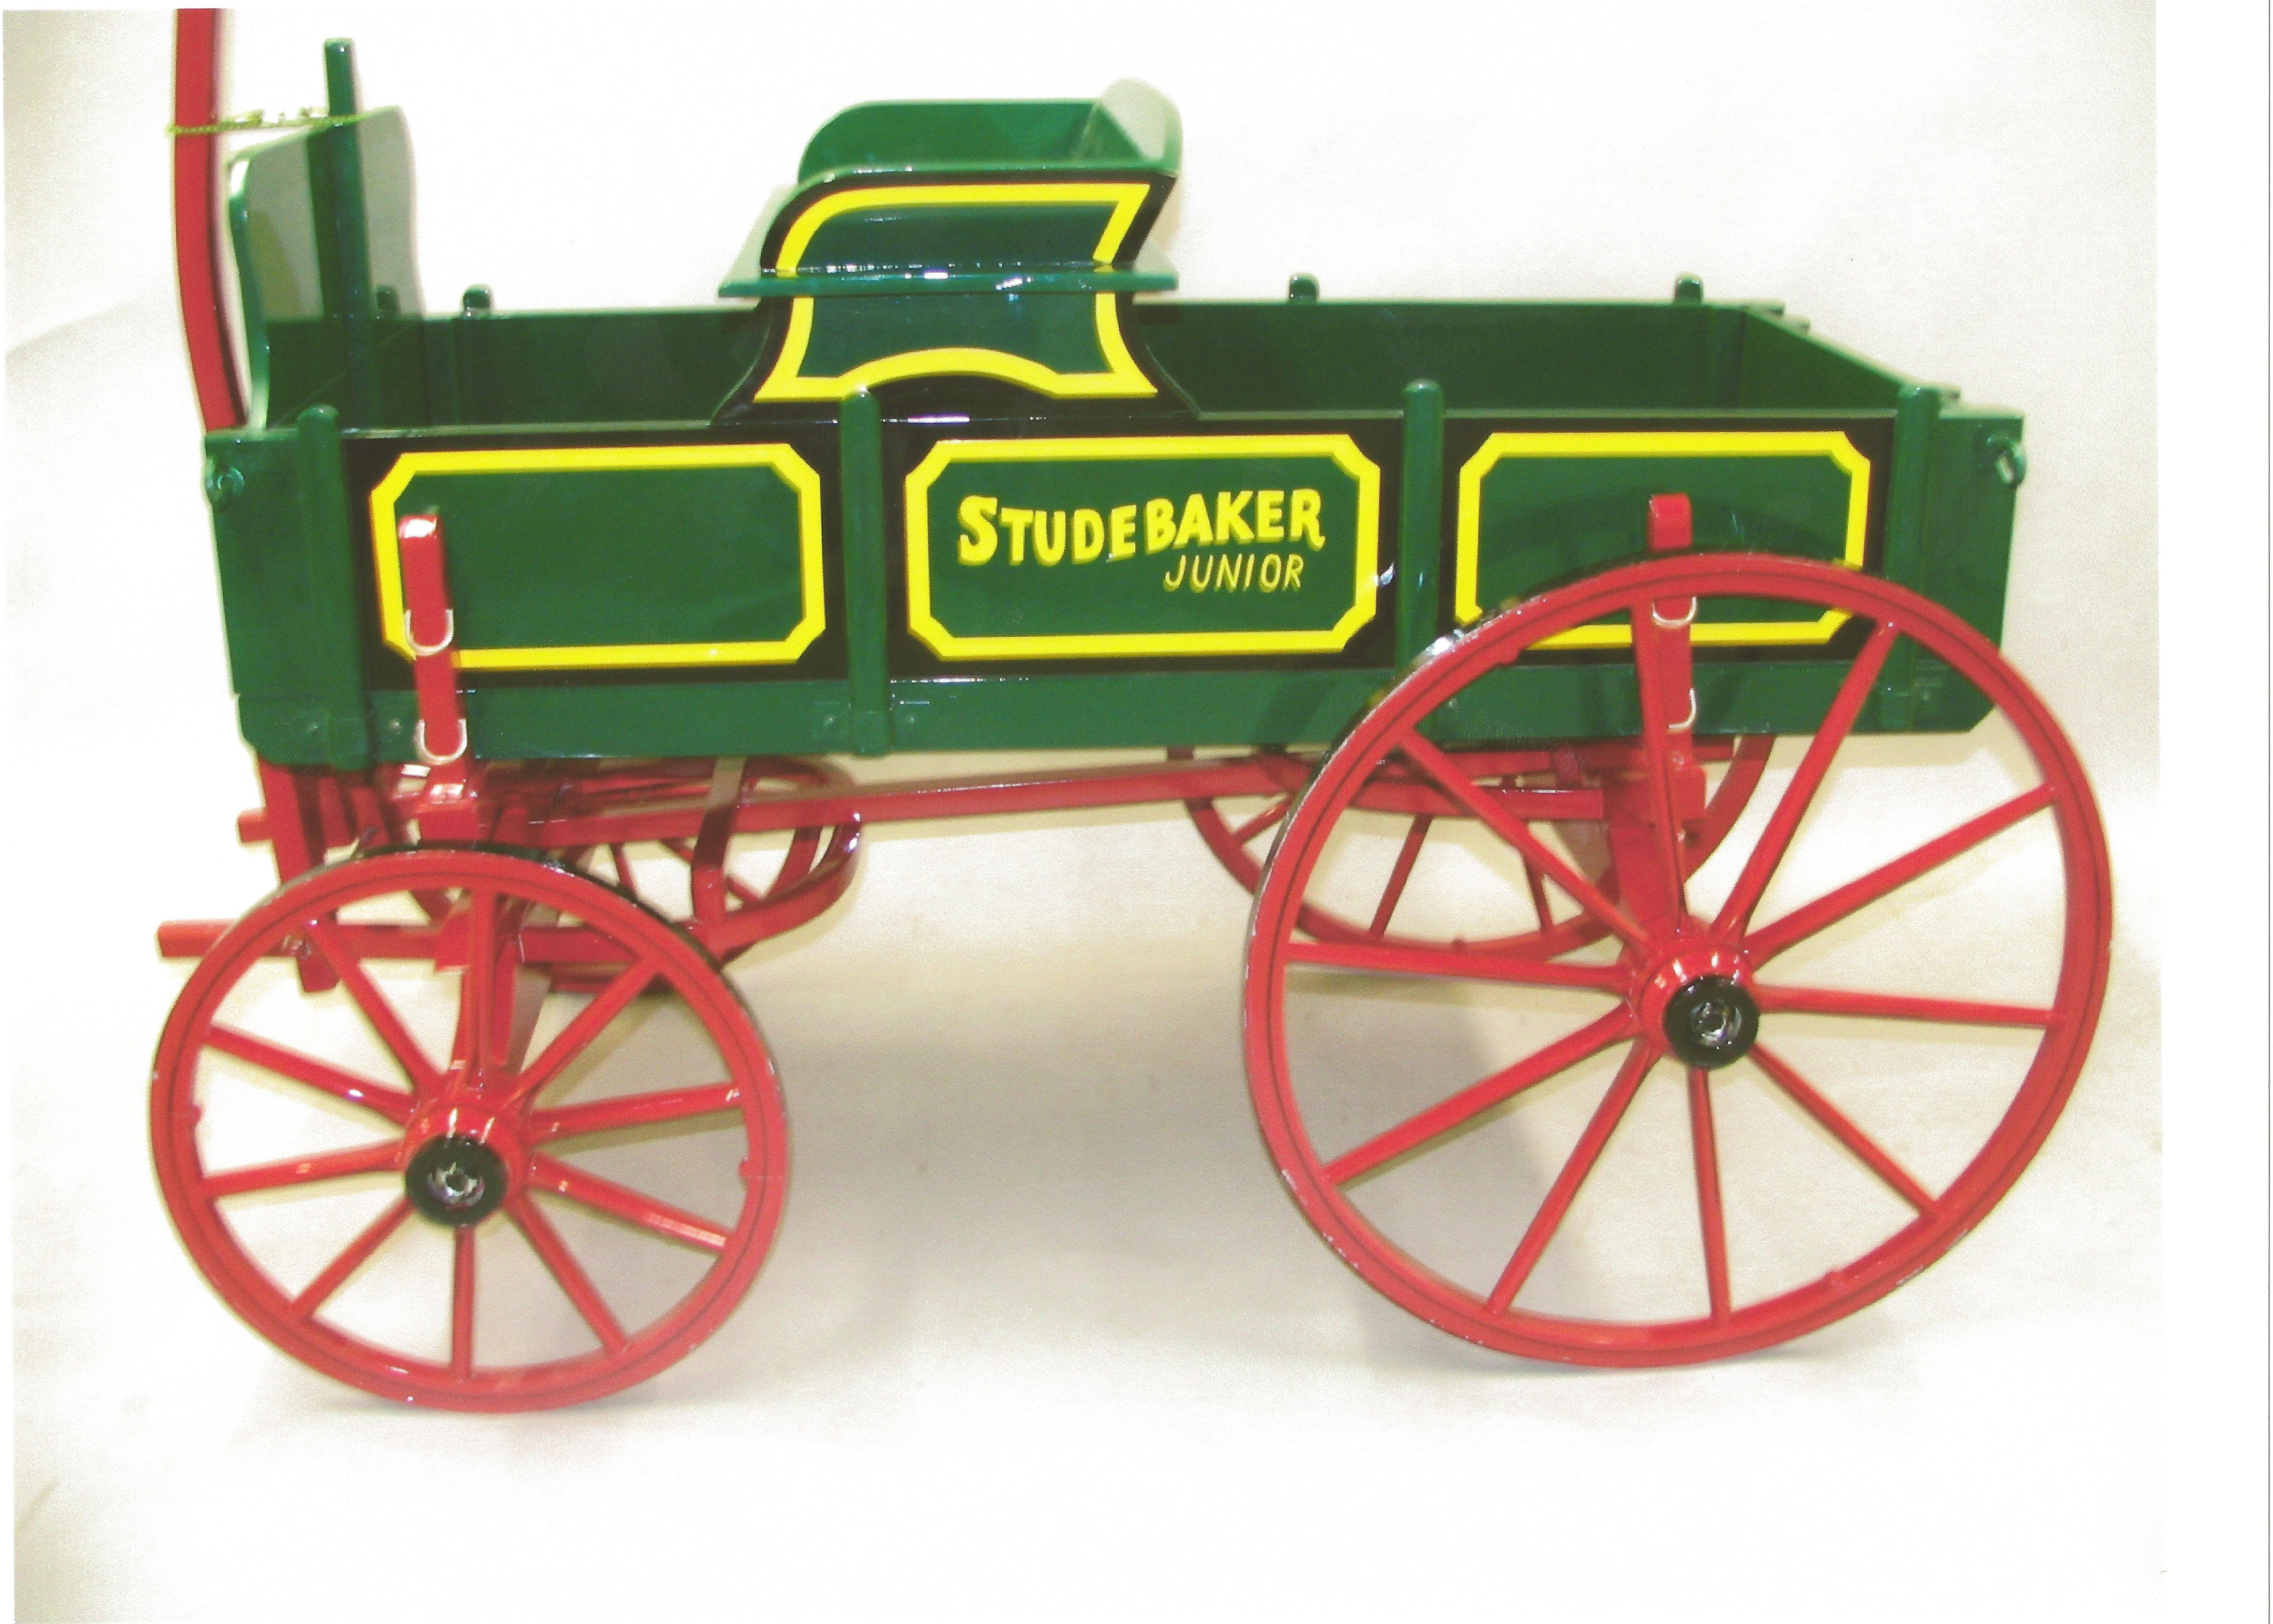 1902 1941 replica of studebaker jr farm wagon crafted by amish 1902 1941 replica of studebaker jr farm wagon crafted by amish wagon builder allen miller manufactured by south bend toy mfg co note blueprint plans to malvernweather Images